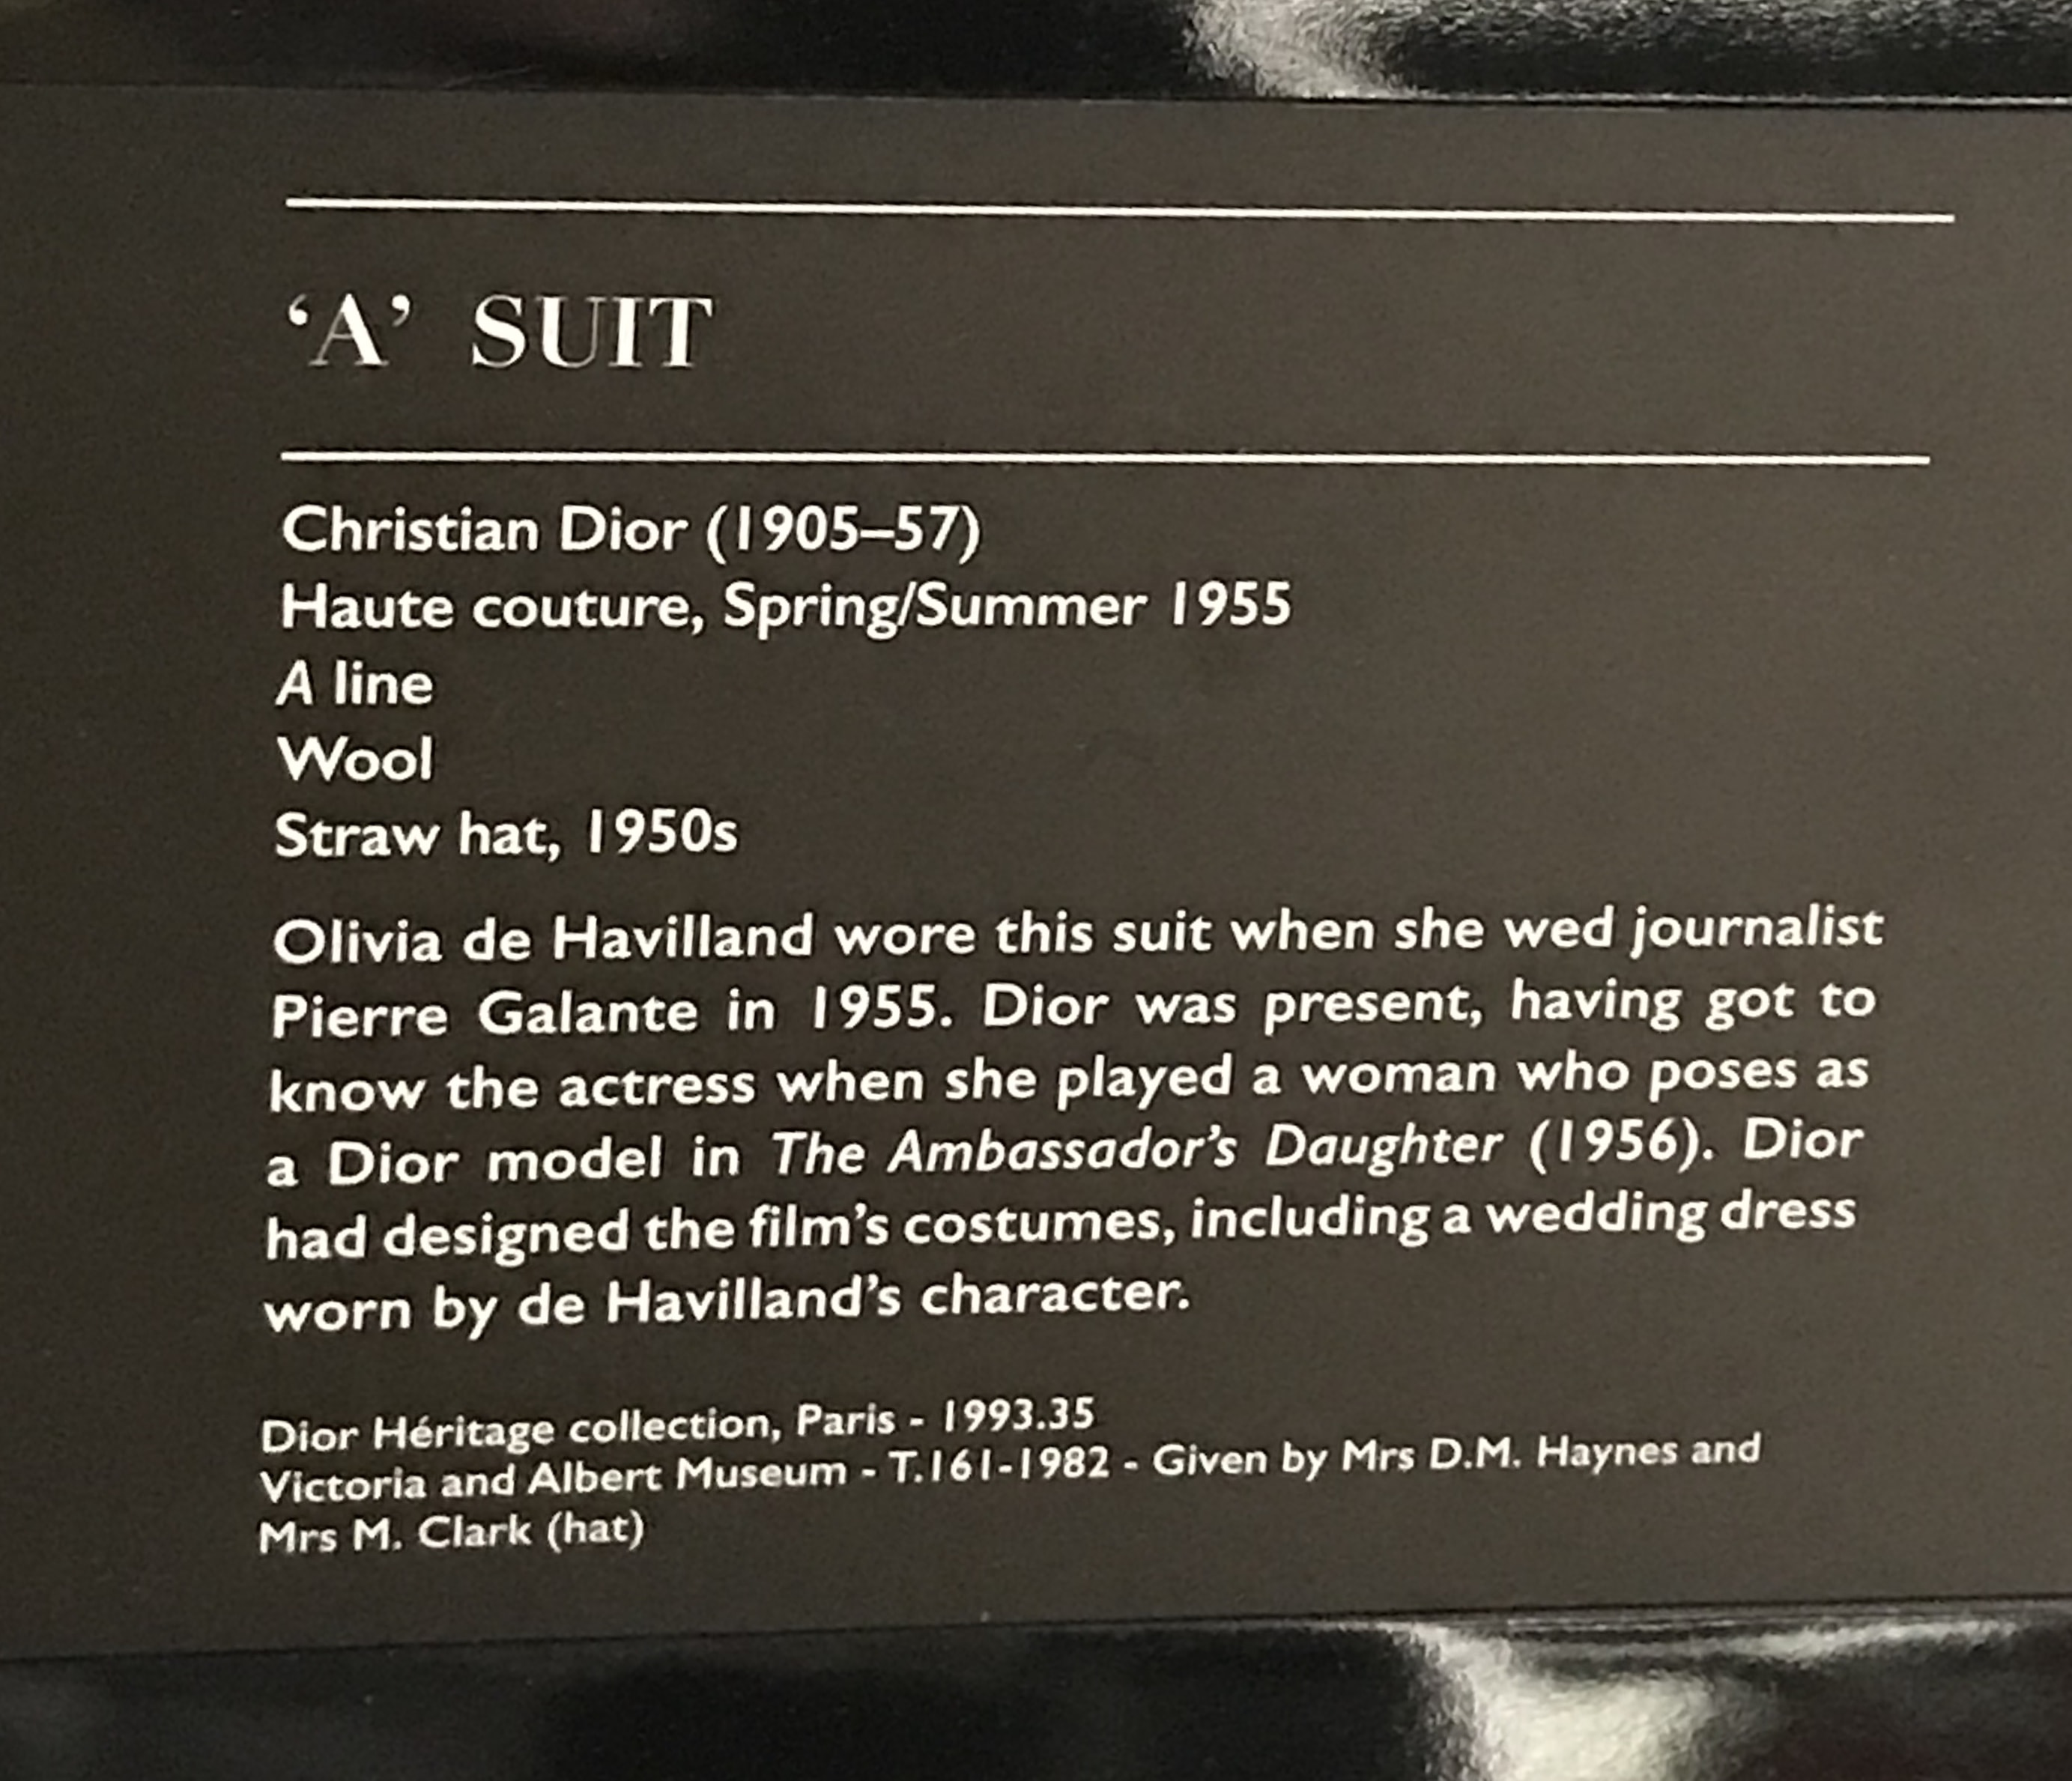 The Christian Dior Designer of Dreams Exhibition at the V&A. The A Suit from the Dior Line.